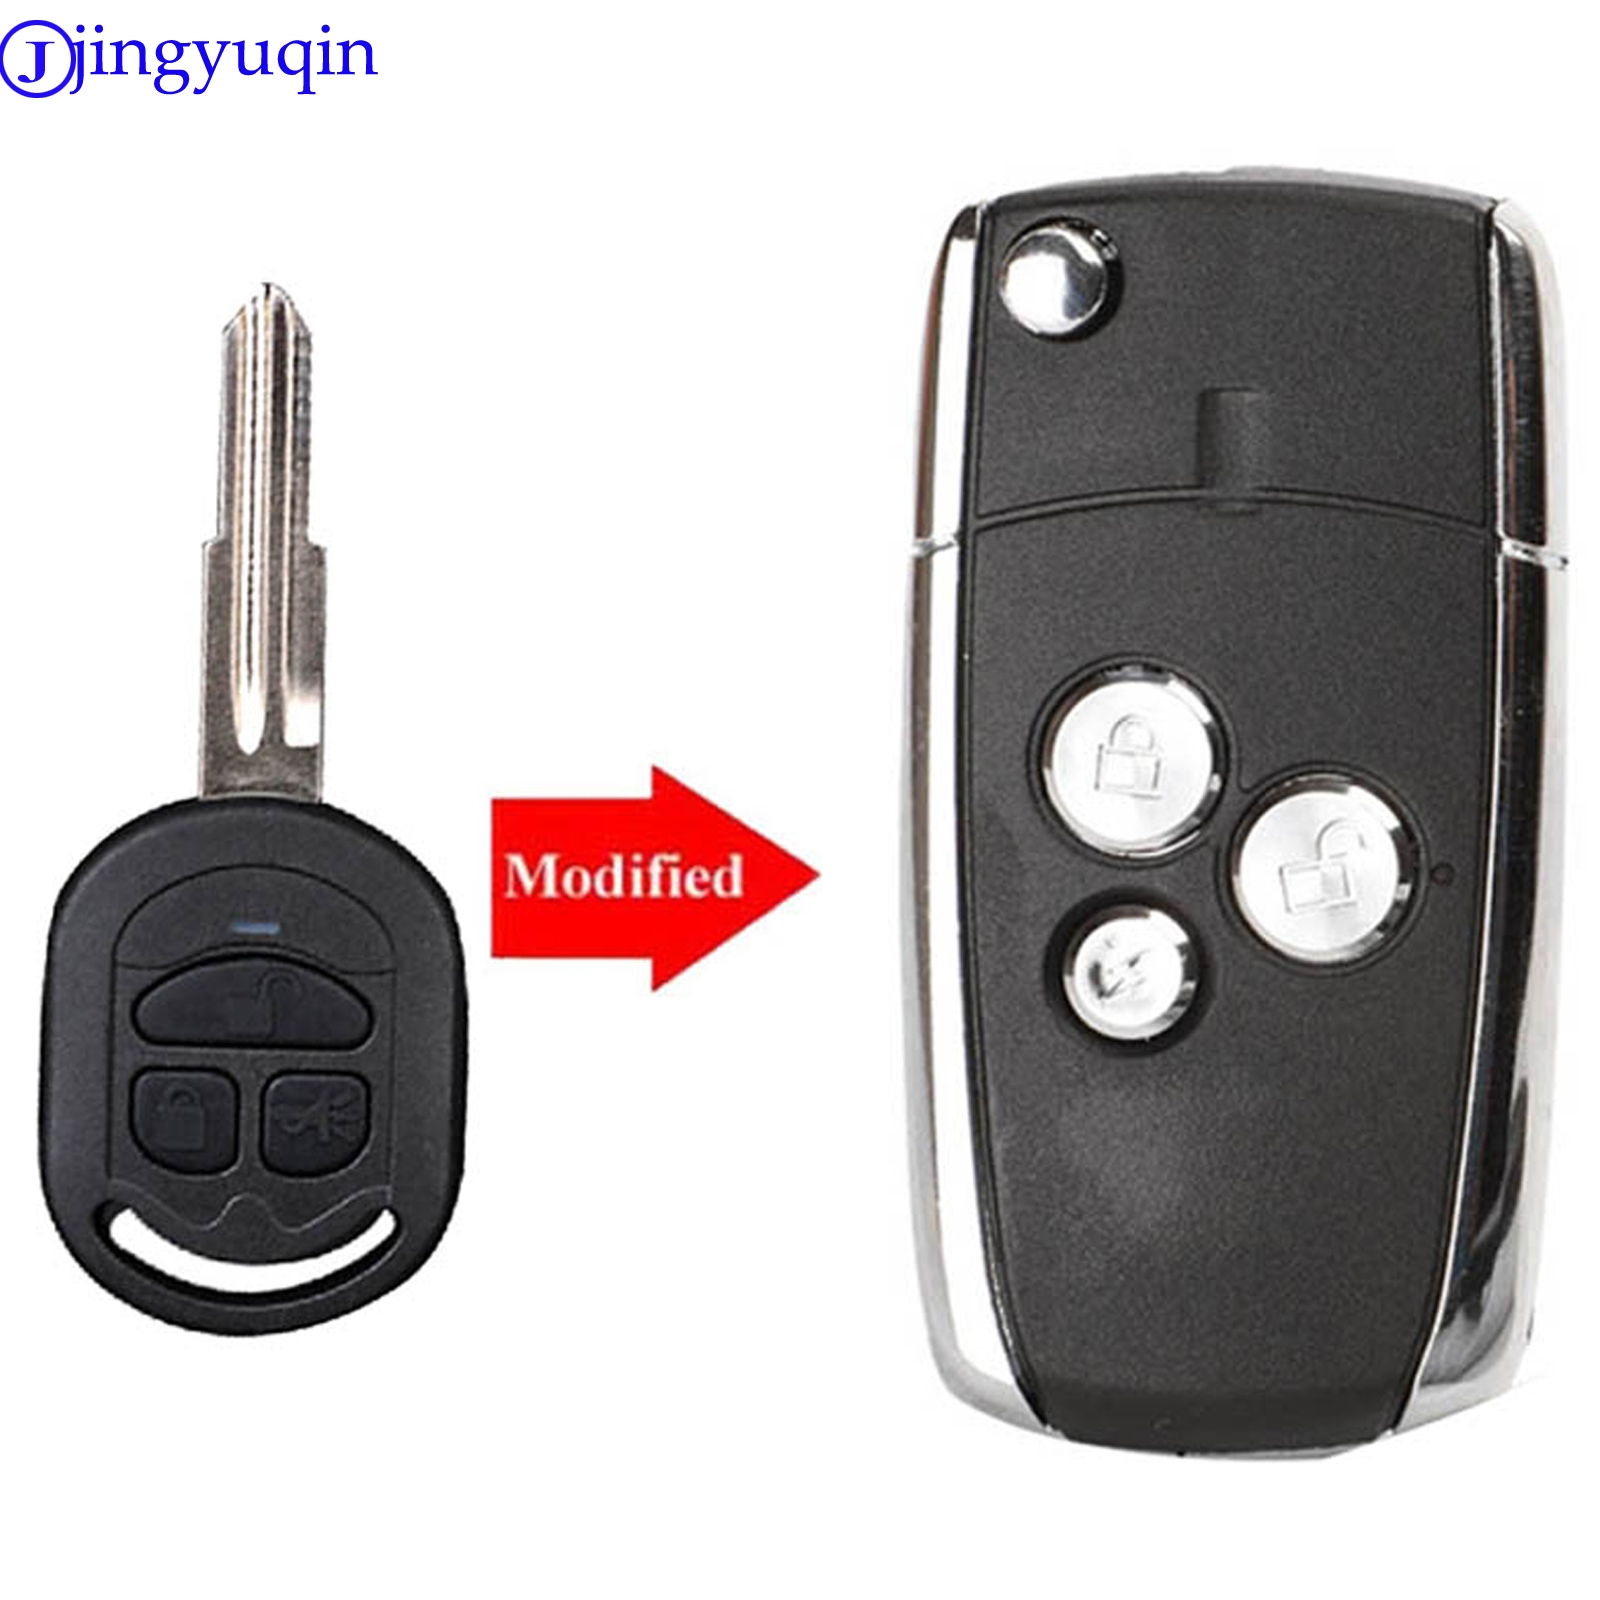 jingyuqin Modified Flip Folding Remote Key Shell Case For Chevrolet optra 2009 For Buick Excelle HRV (After 2005 year)(China)